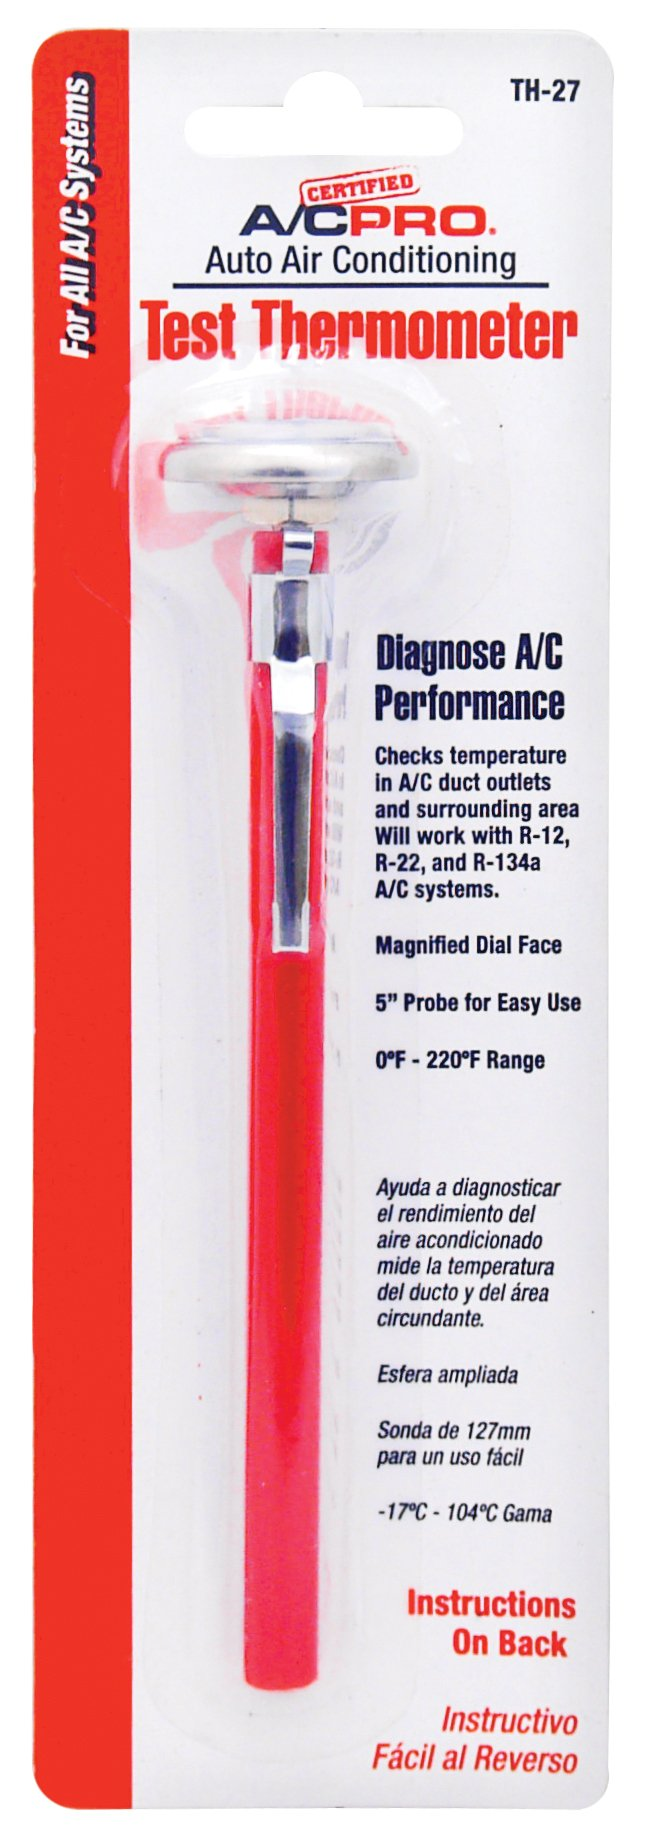 Interdynamics Certified A/C Pro Auto Air Conditioning Test Thermometer